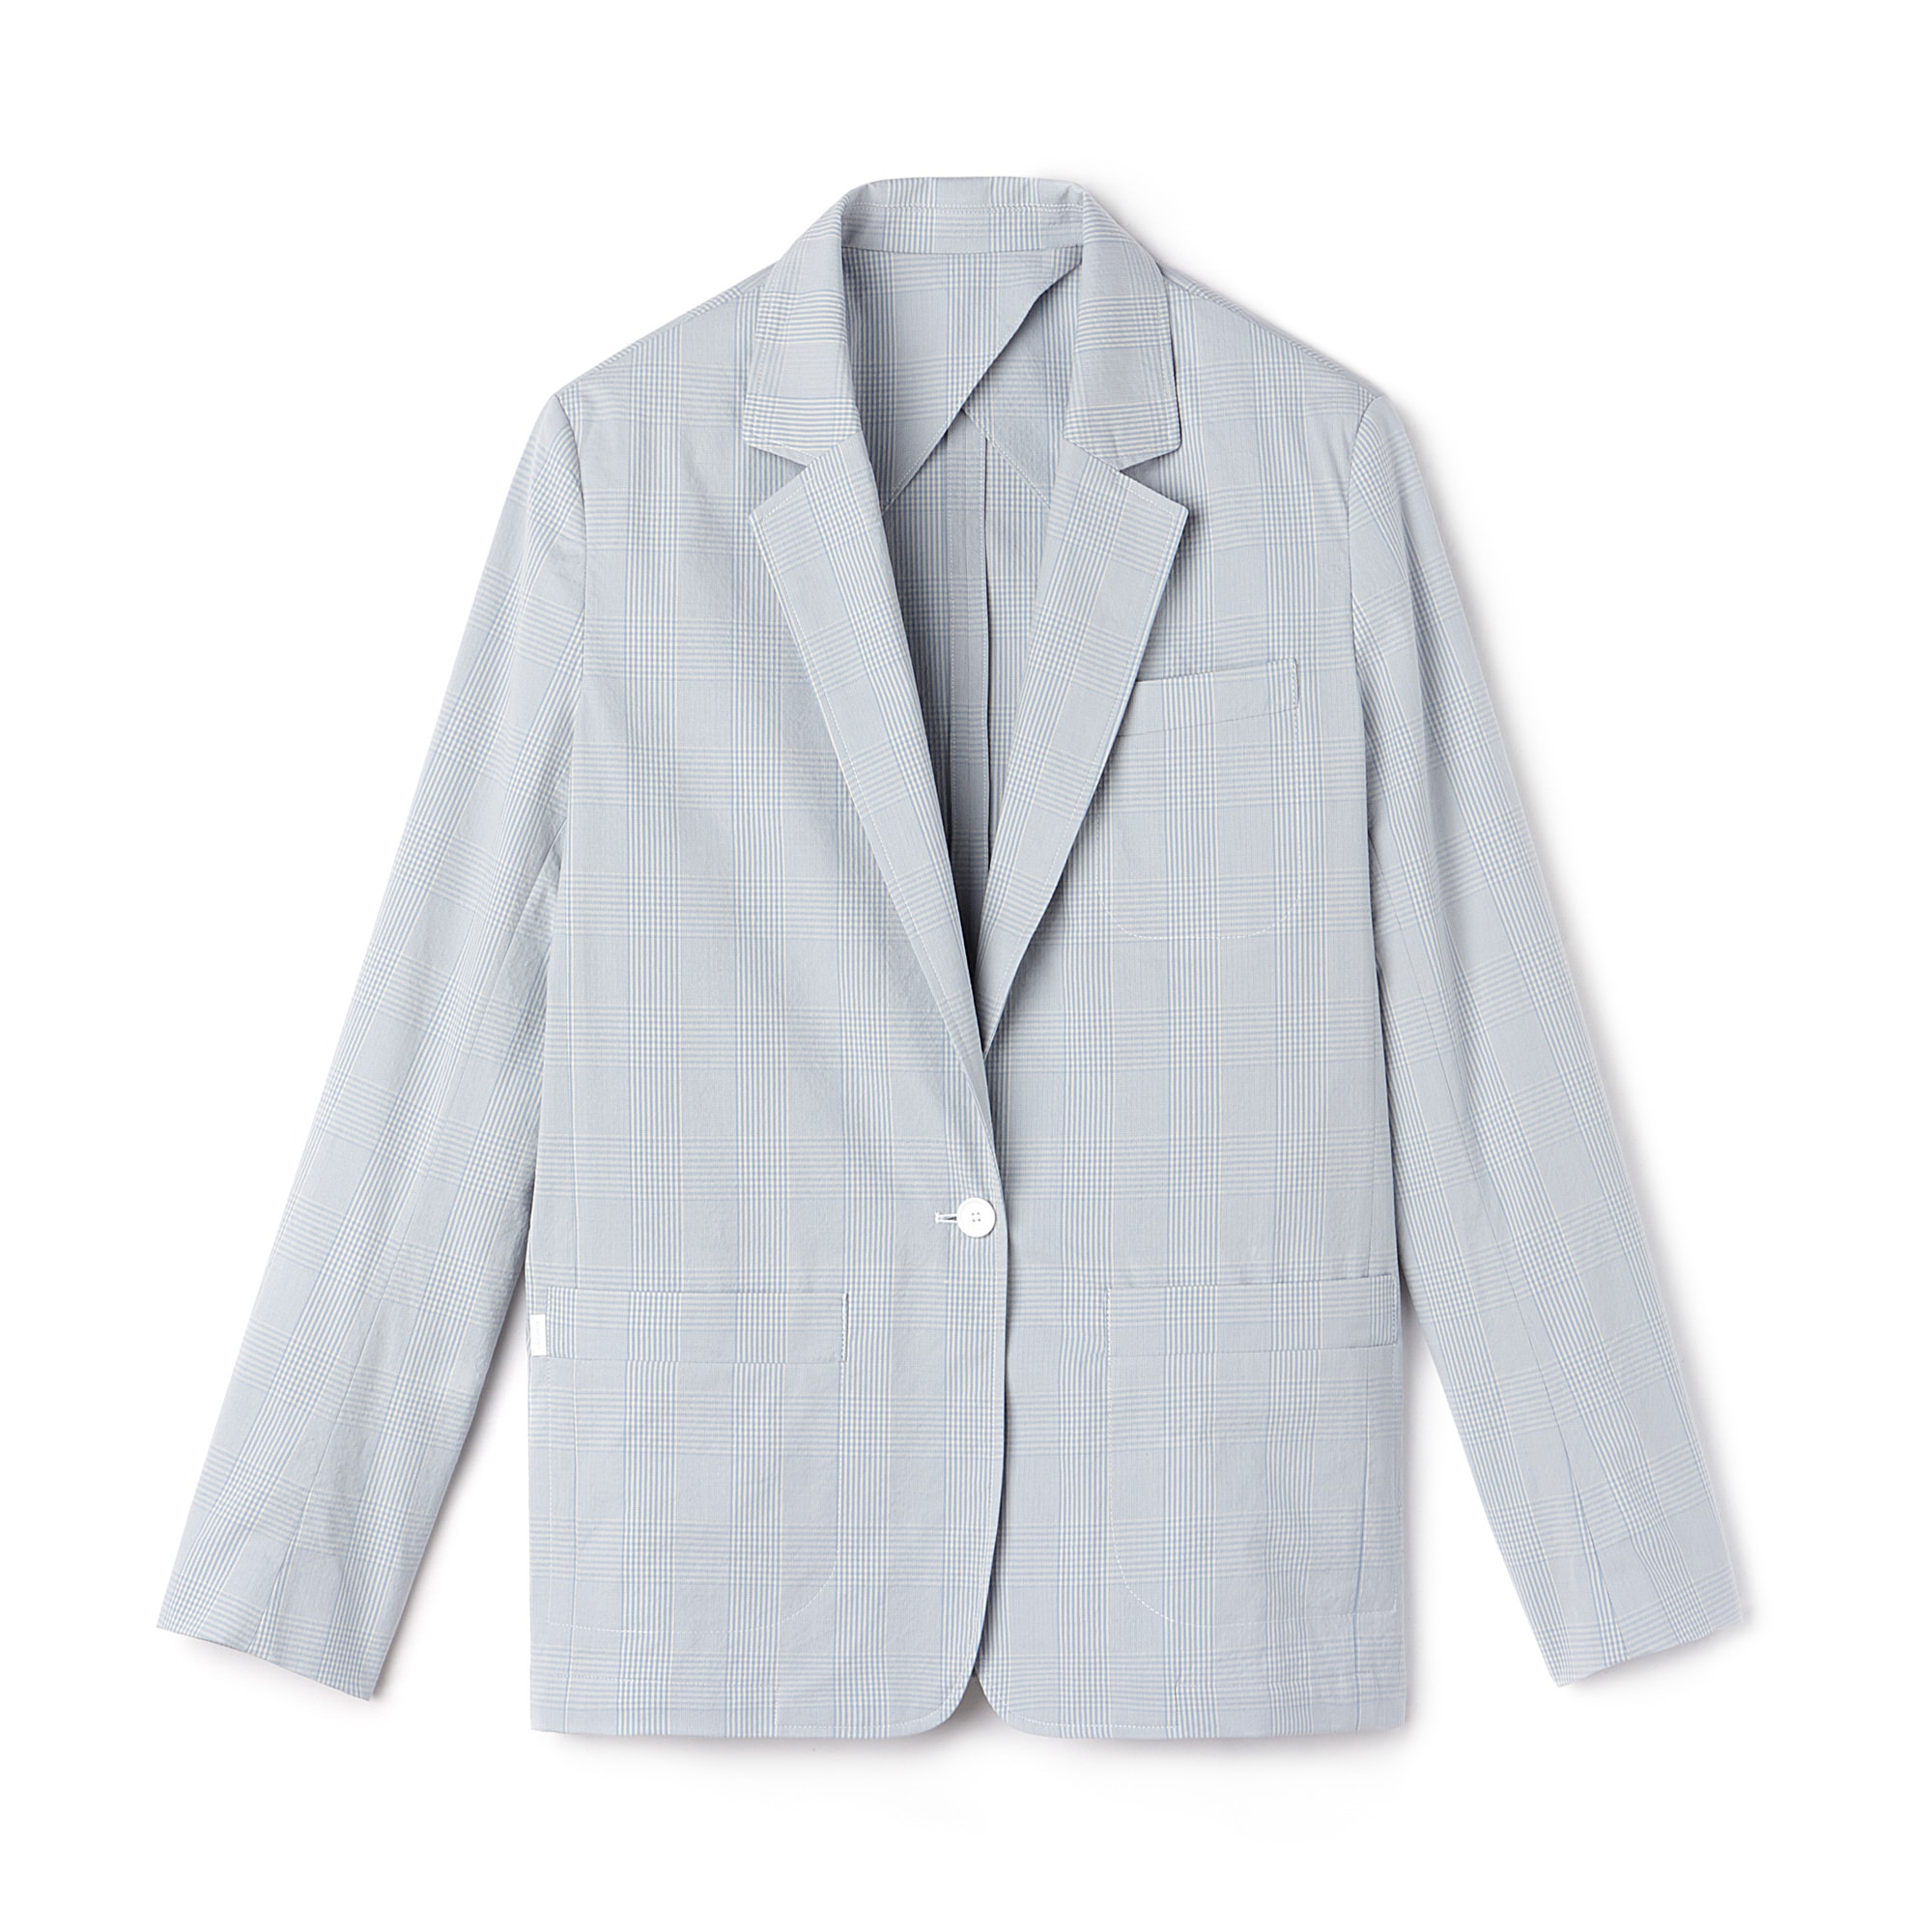 Women's Cotton Seersucker Blazer